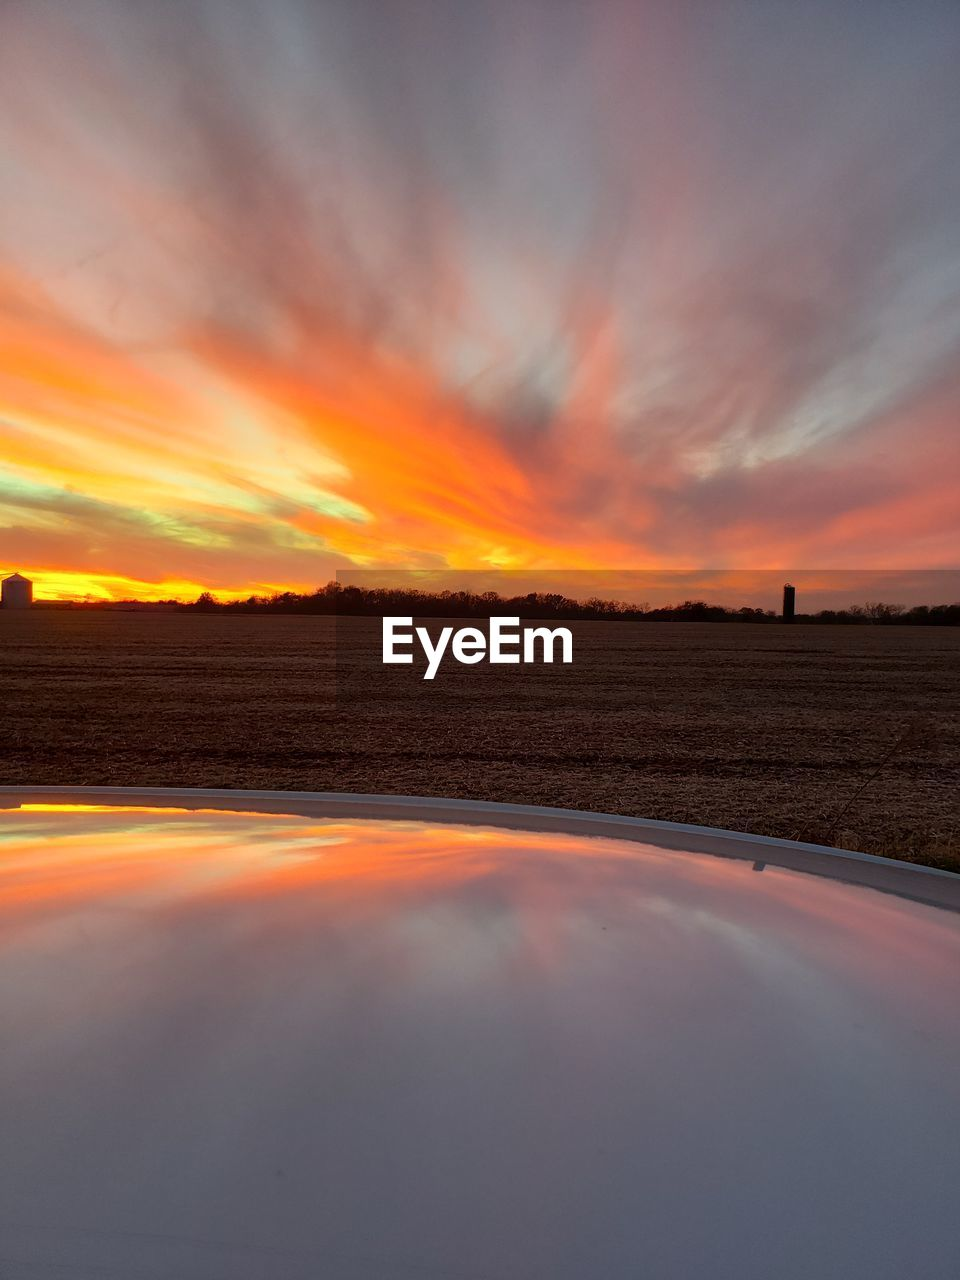 sunset, sky, orange color, scenics - nature, beauty in nature, cloud - sky, tranquility, tranquil scene, nature, idyllic, environment, no people, non-urban scene, landscape, transportation, land, water, outdoors, dramatic sky, field